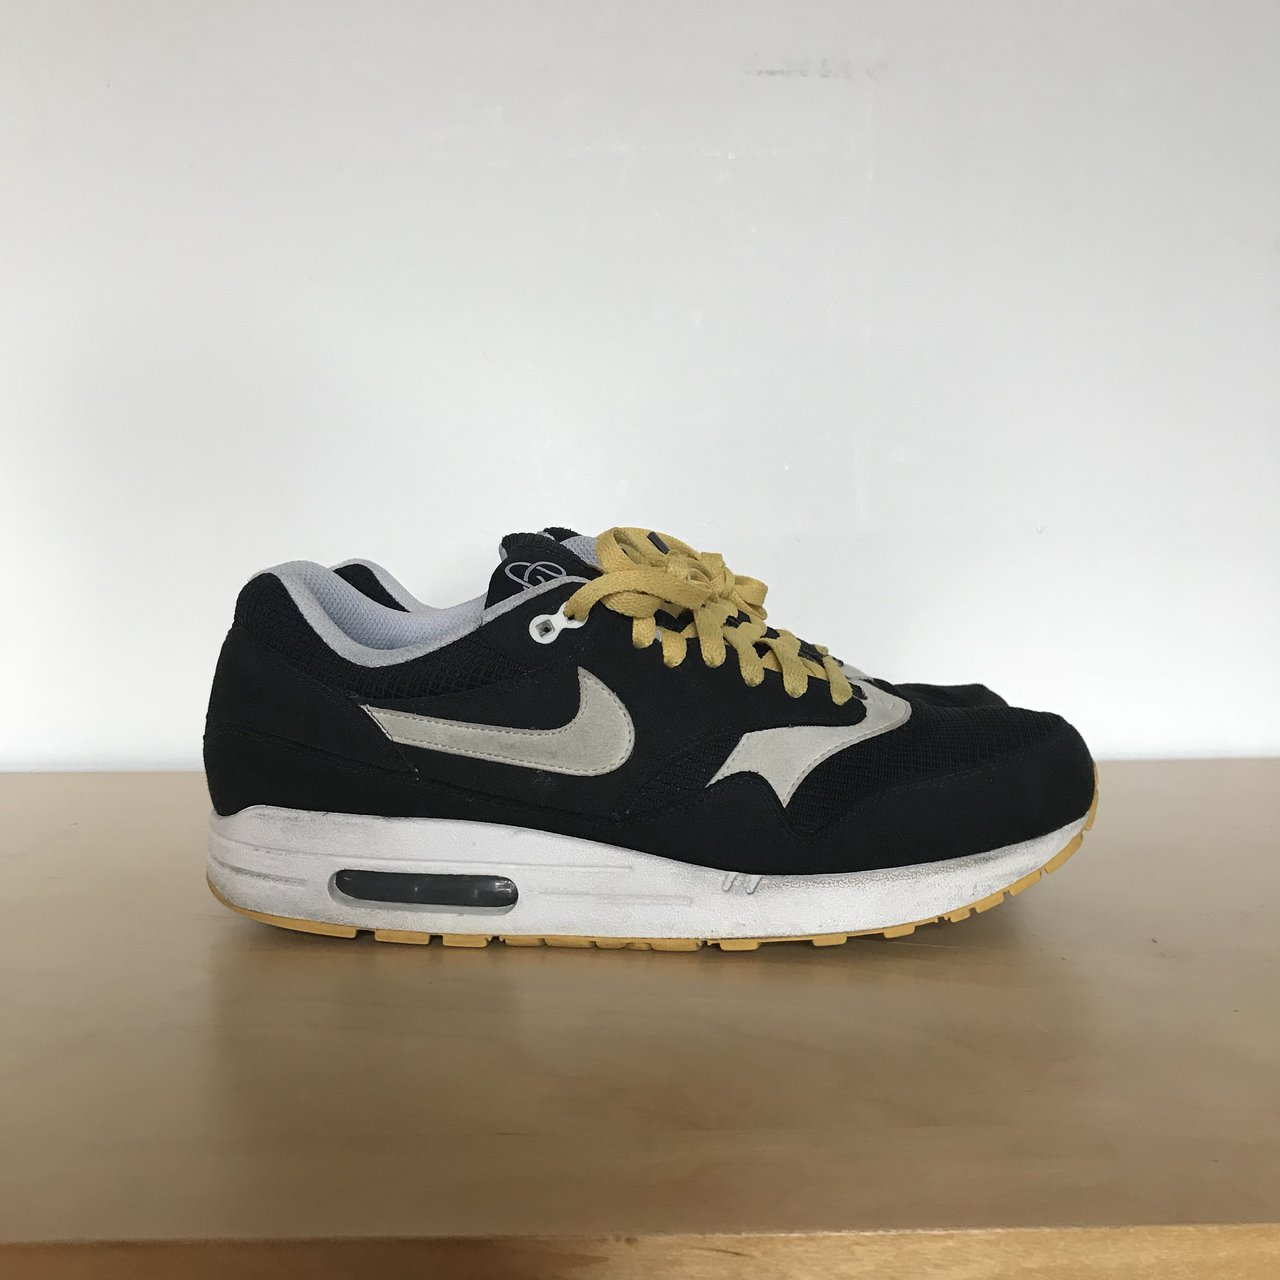 sale retailer 99fbb faaea  callumjh92. last year. Bedlington, United Kingdom. Nike Air Max 1. Black    White   Solar Flare ...